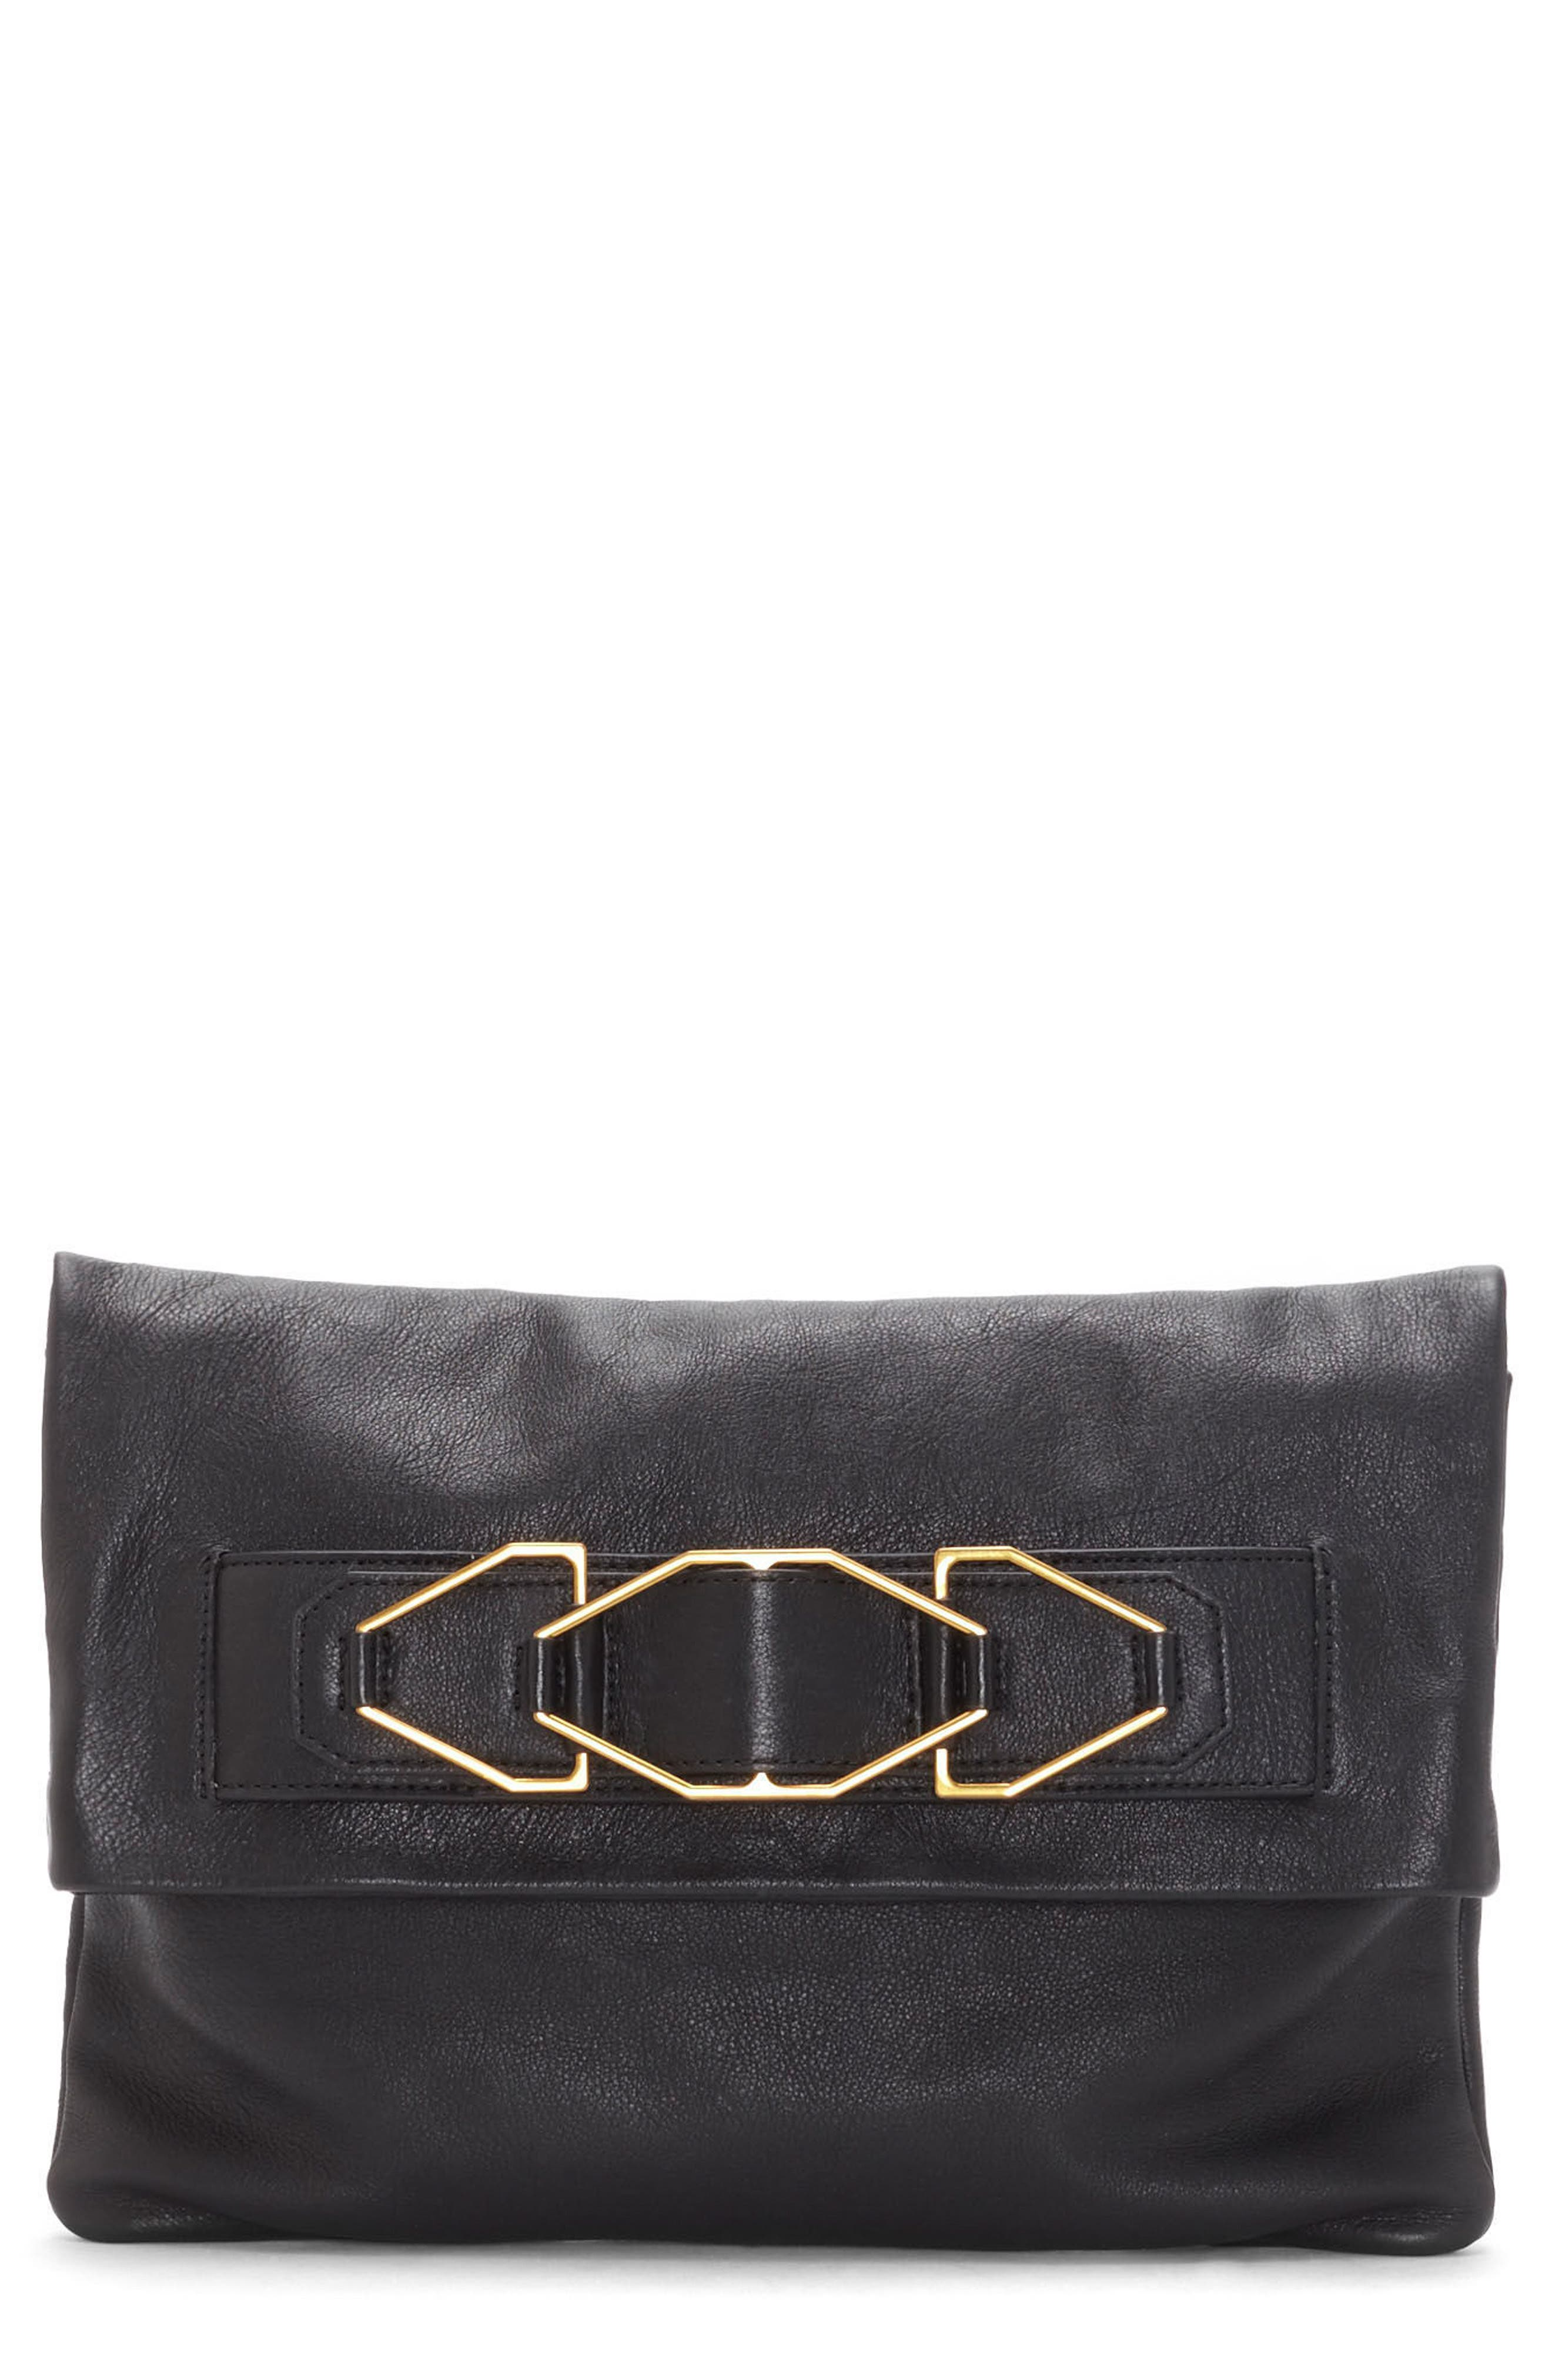 Main Image - Vince Camuto Luk Leather Foldover Clutch